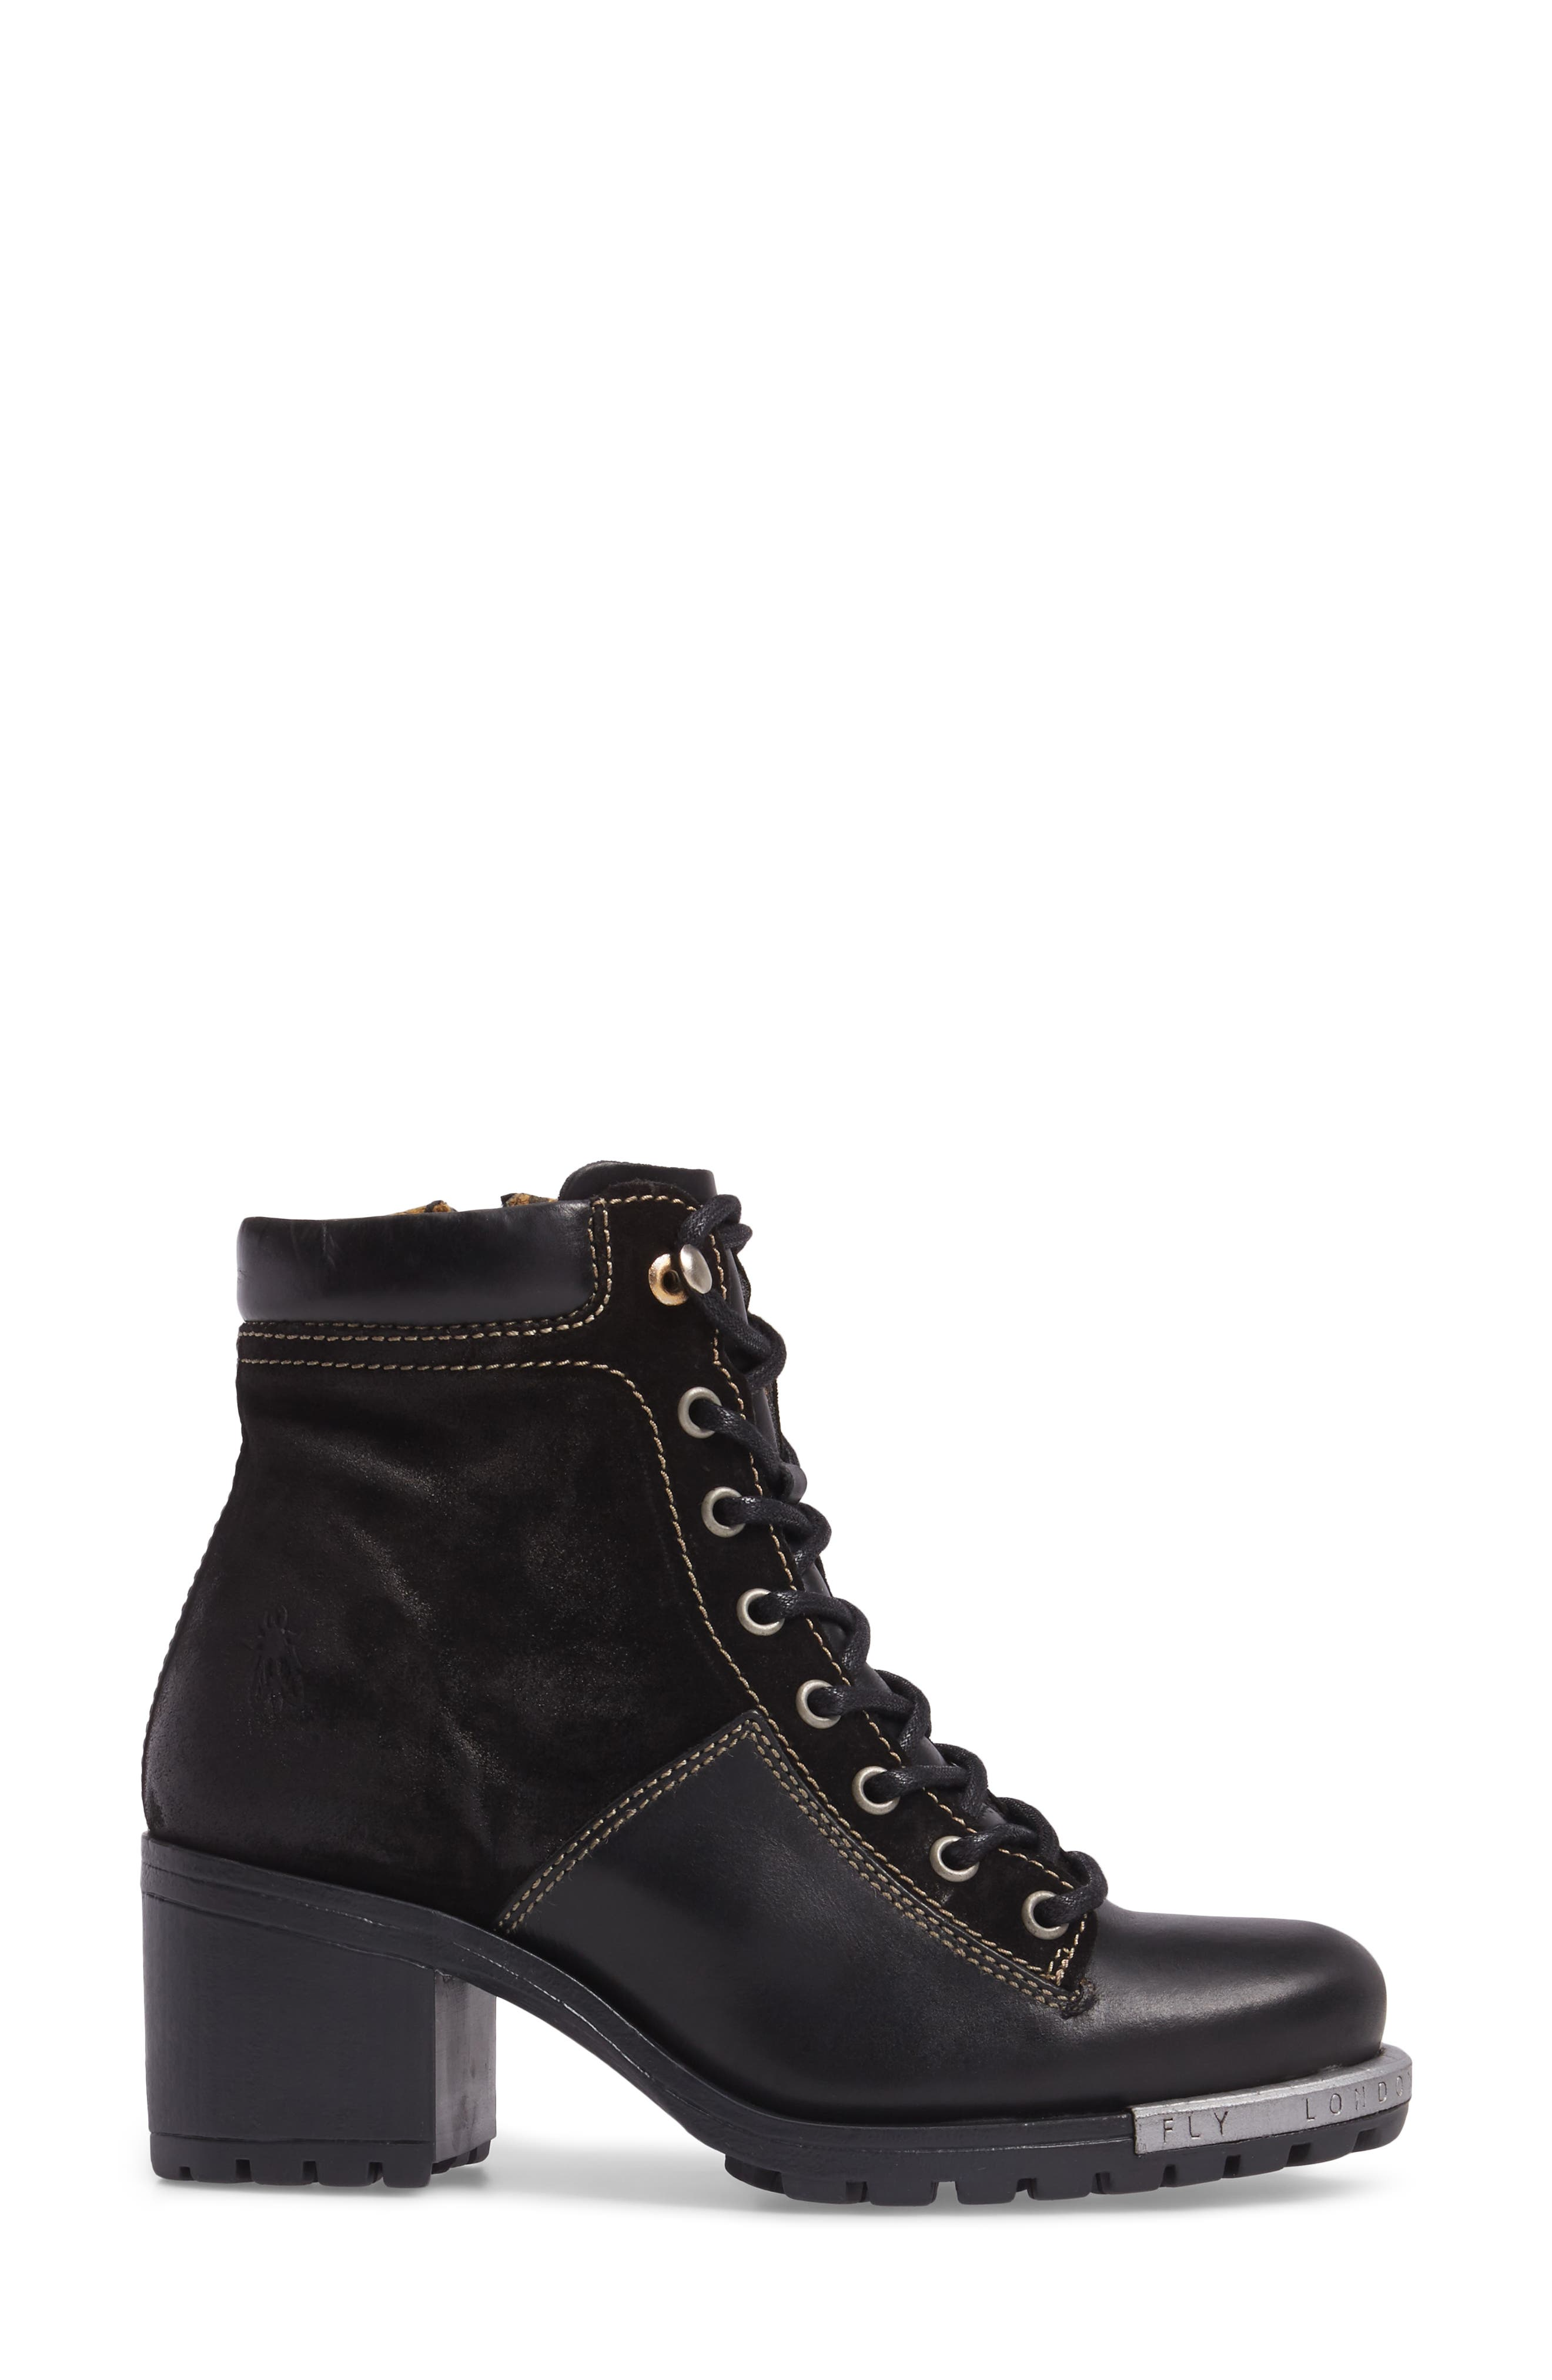 FLY LONDON,                             'Leal' Boot,                             Alternate thumbnail 3, color,                             005